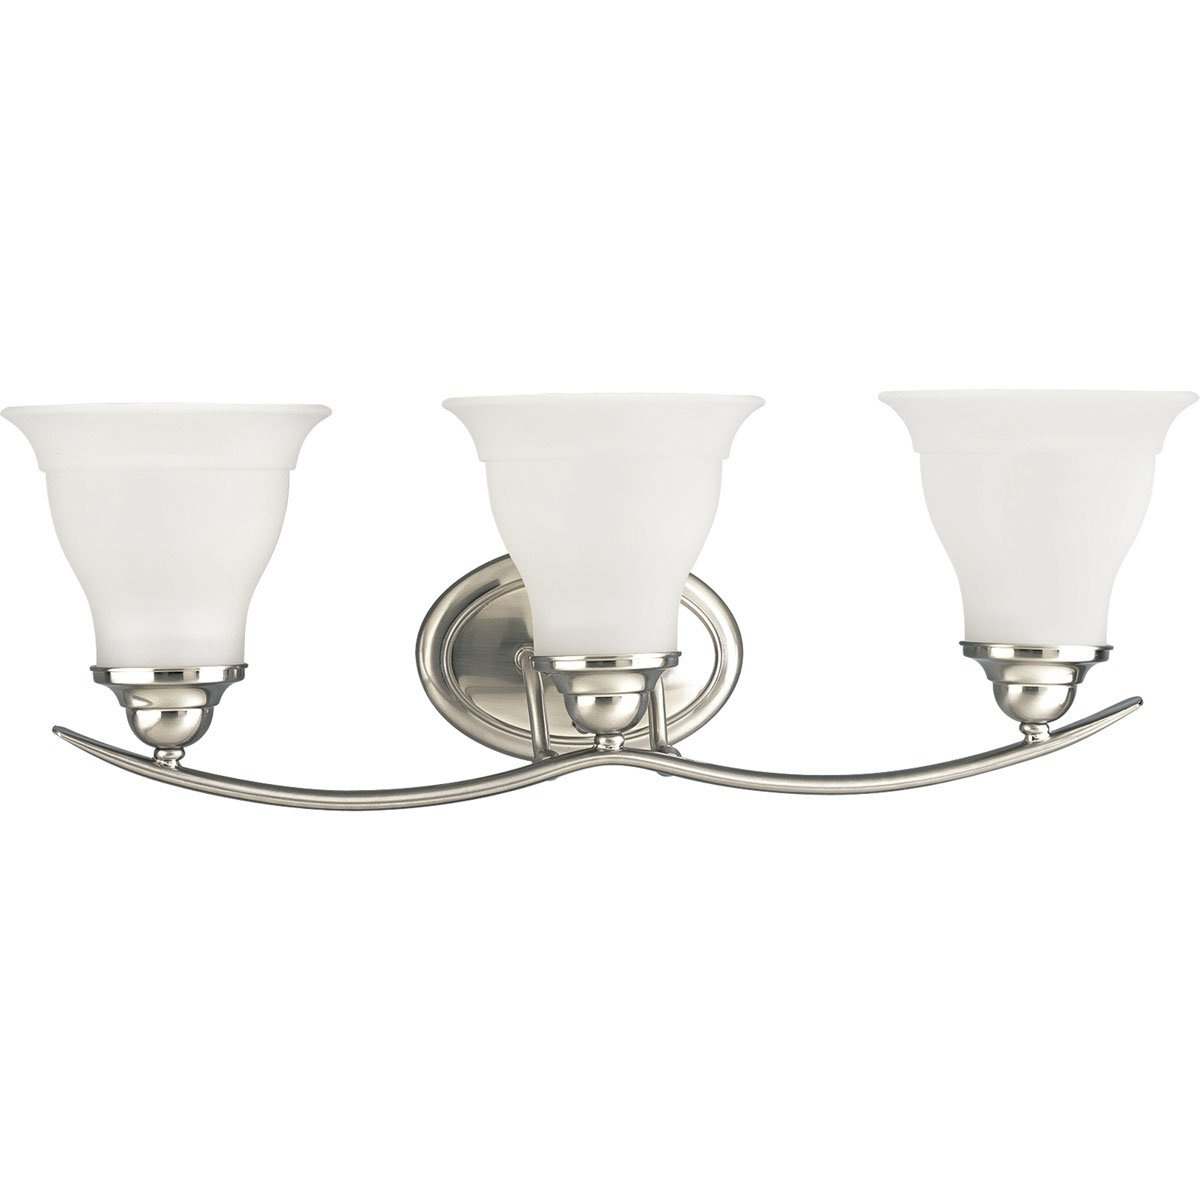 Progress Lighting P3192-09 3-Light Bath Bracket, Brushed Nickel by Progress Lighting